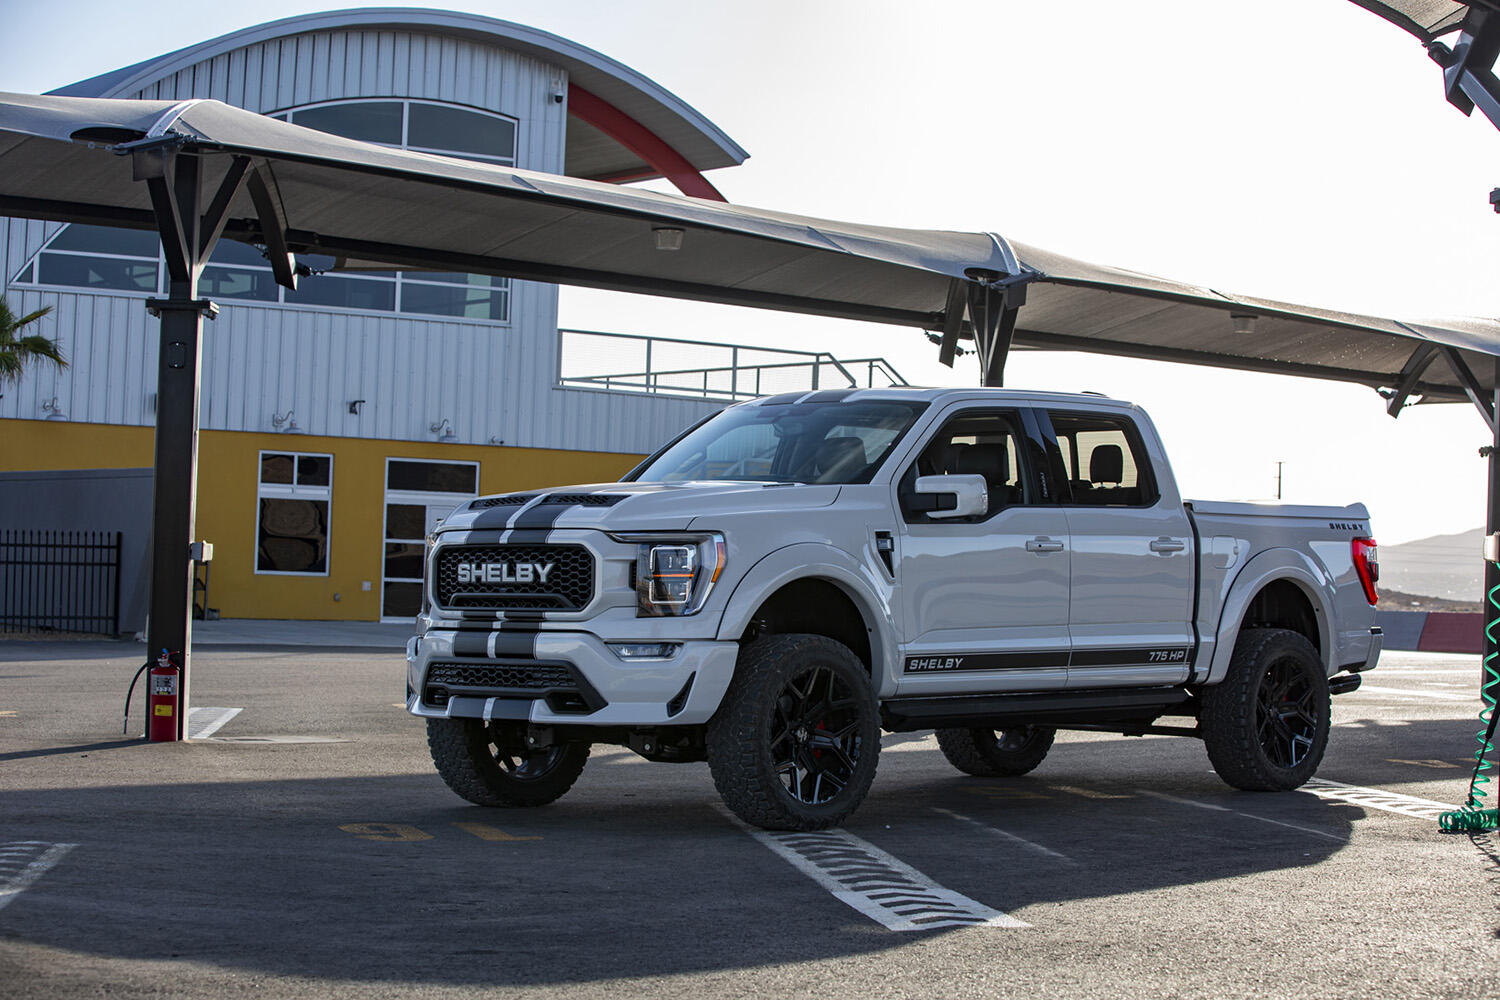 Shelby Ford F-150